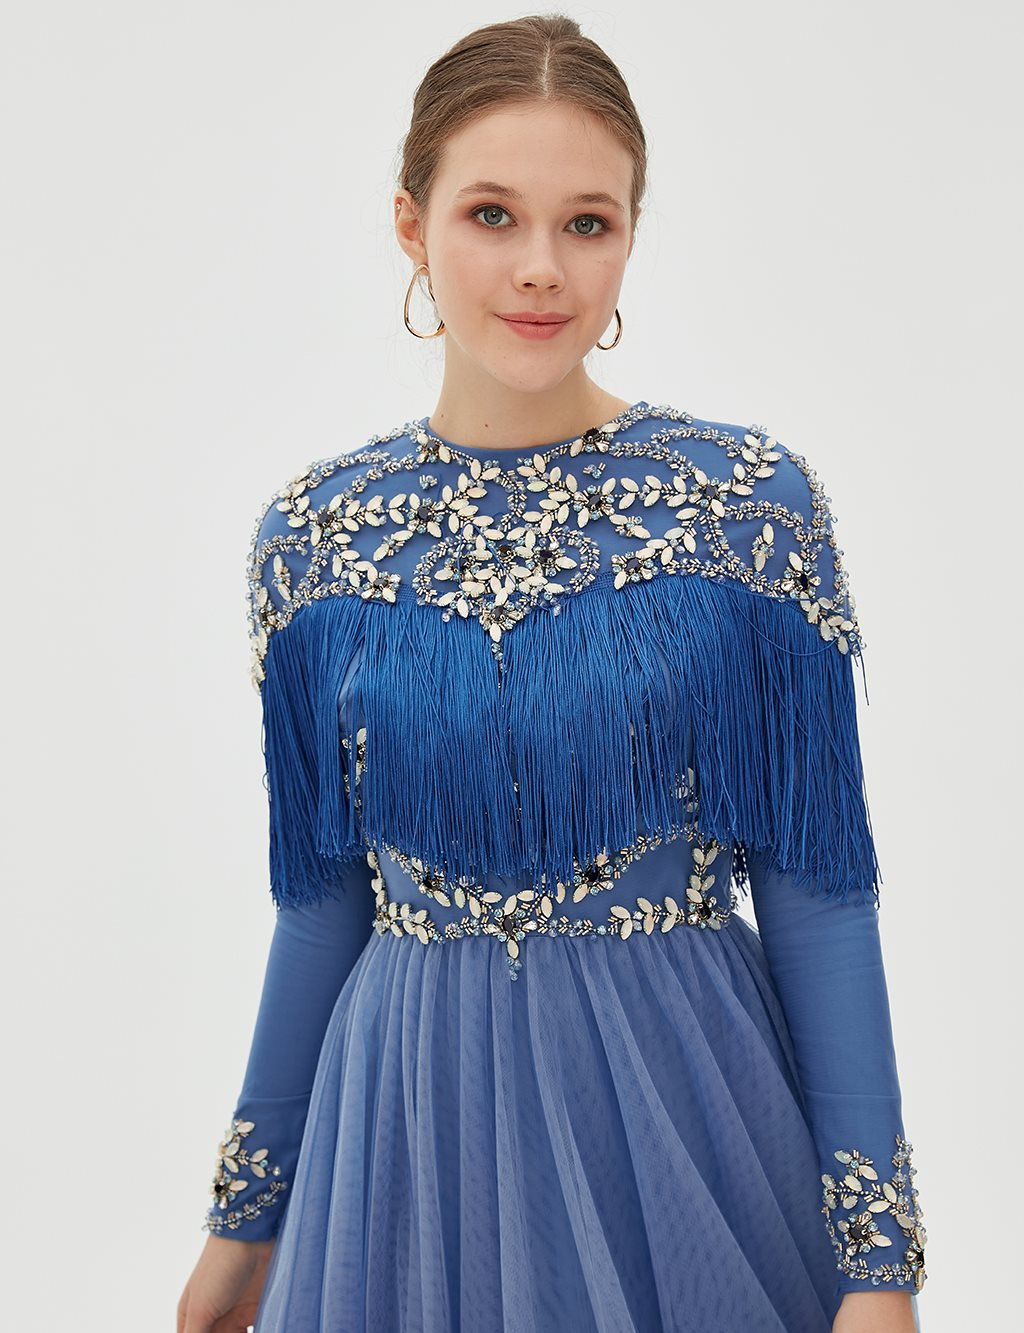 TIARA Fringe Detailed Evening Gown B9 26039 Blue